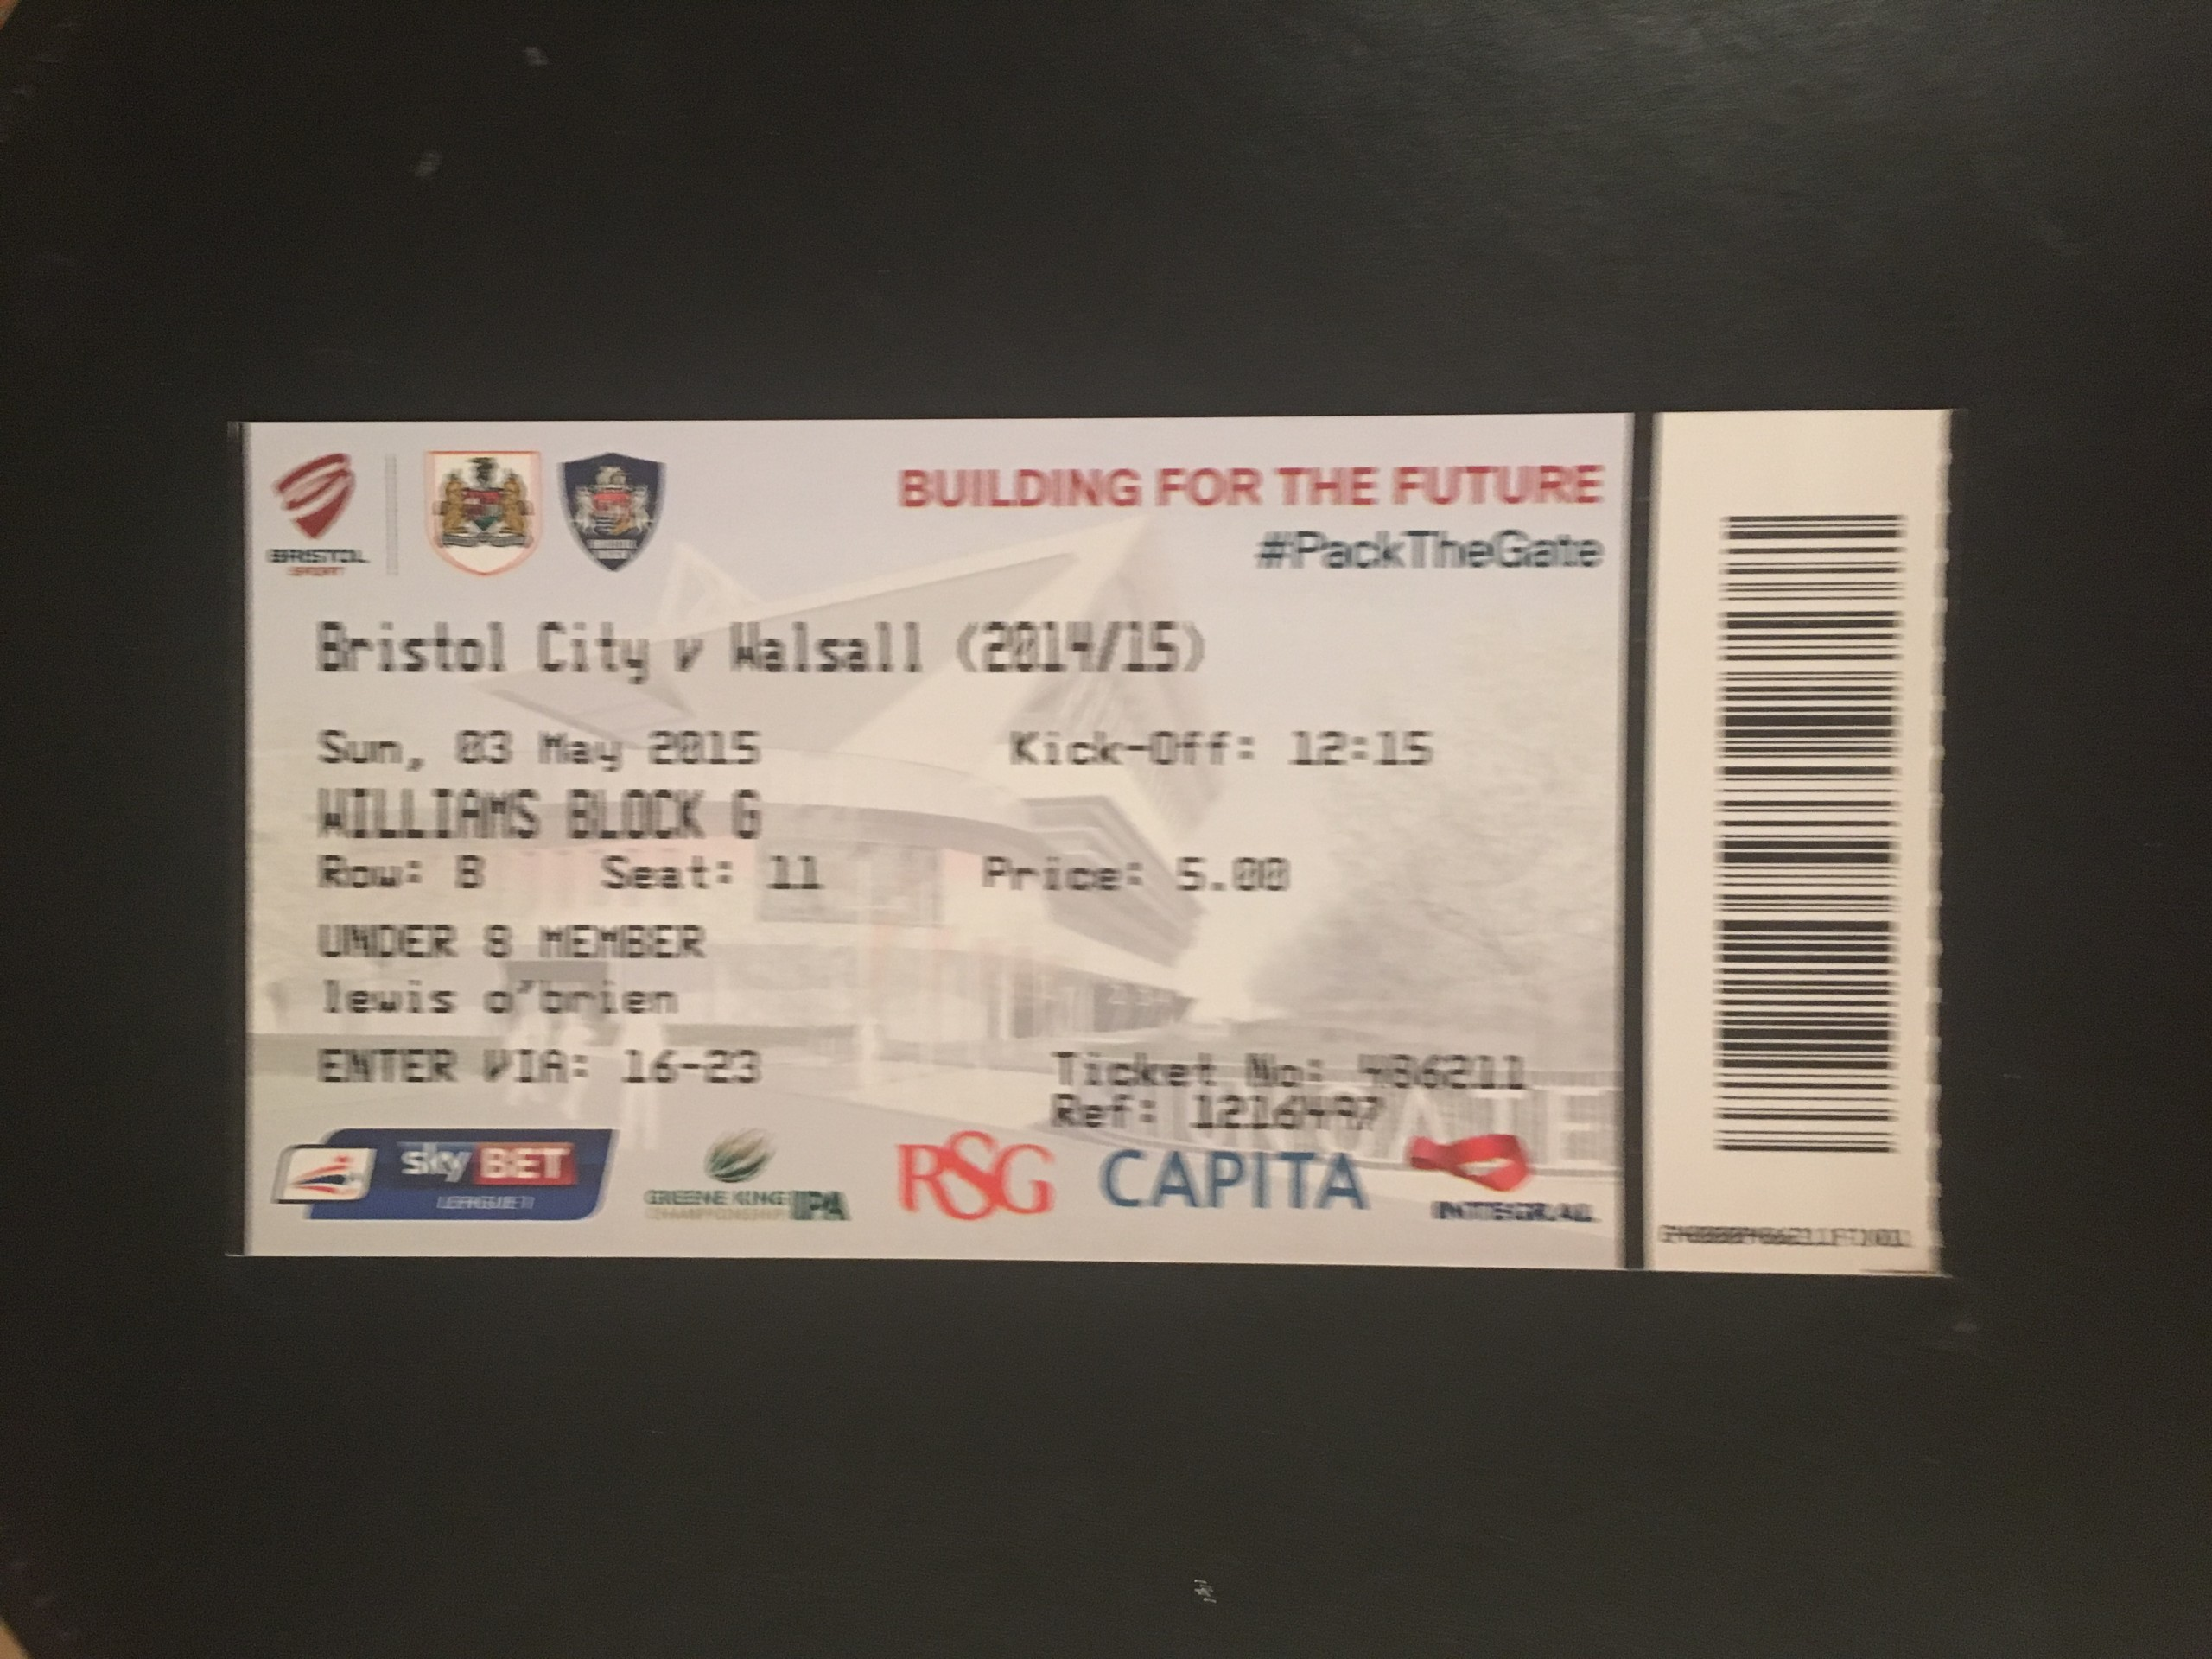 Bristol City v Walsall 03-05-2015 Ticket